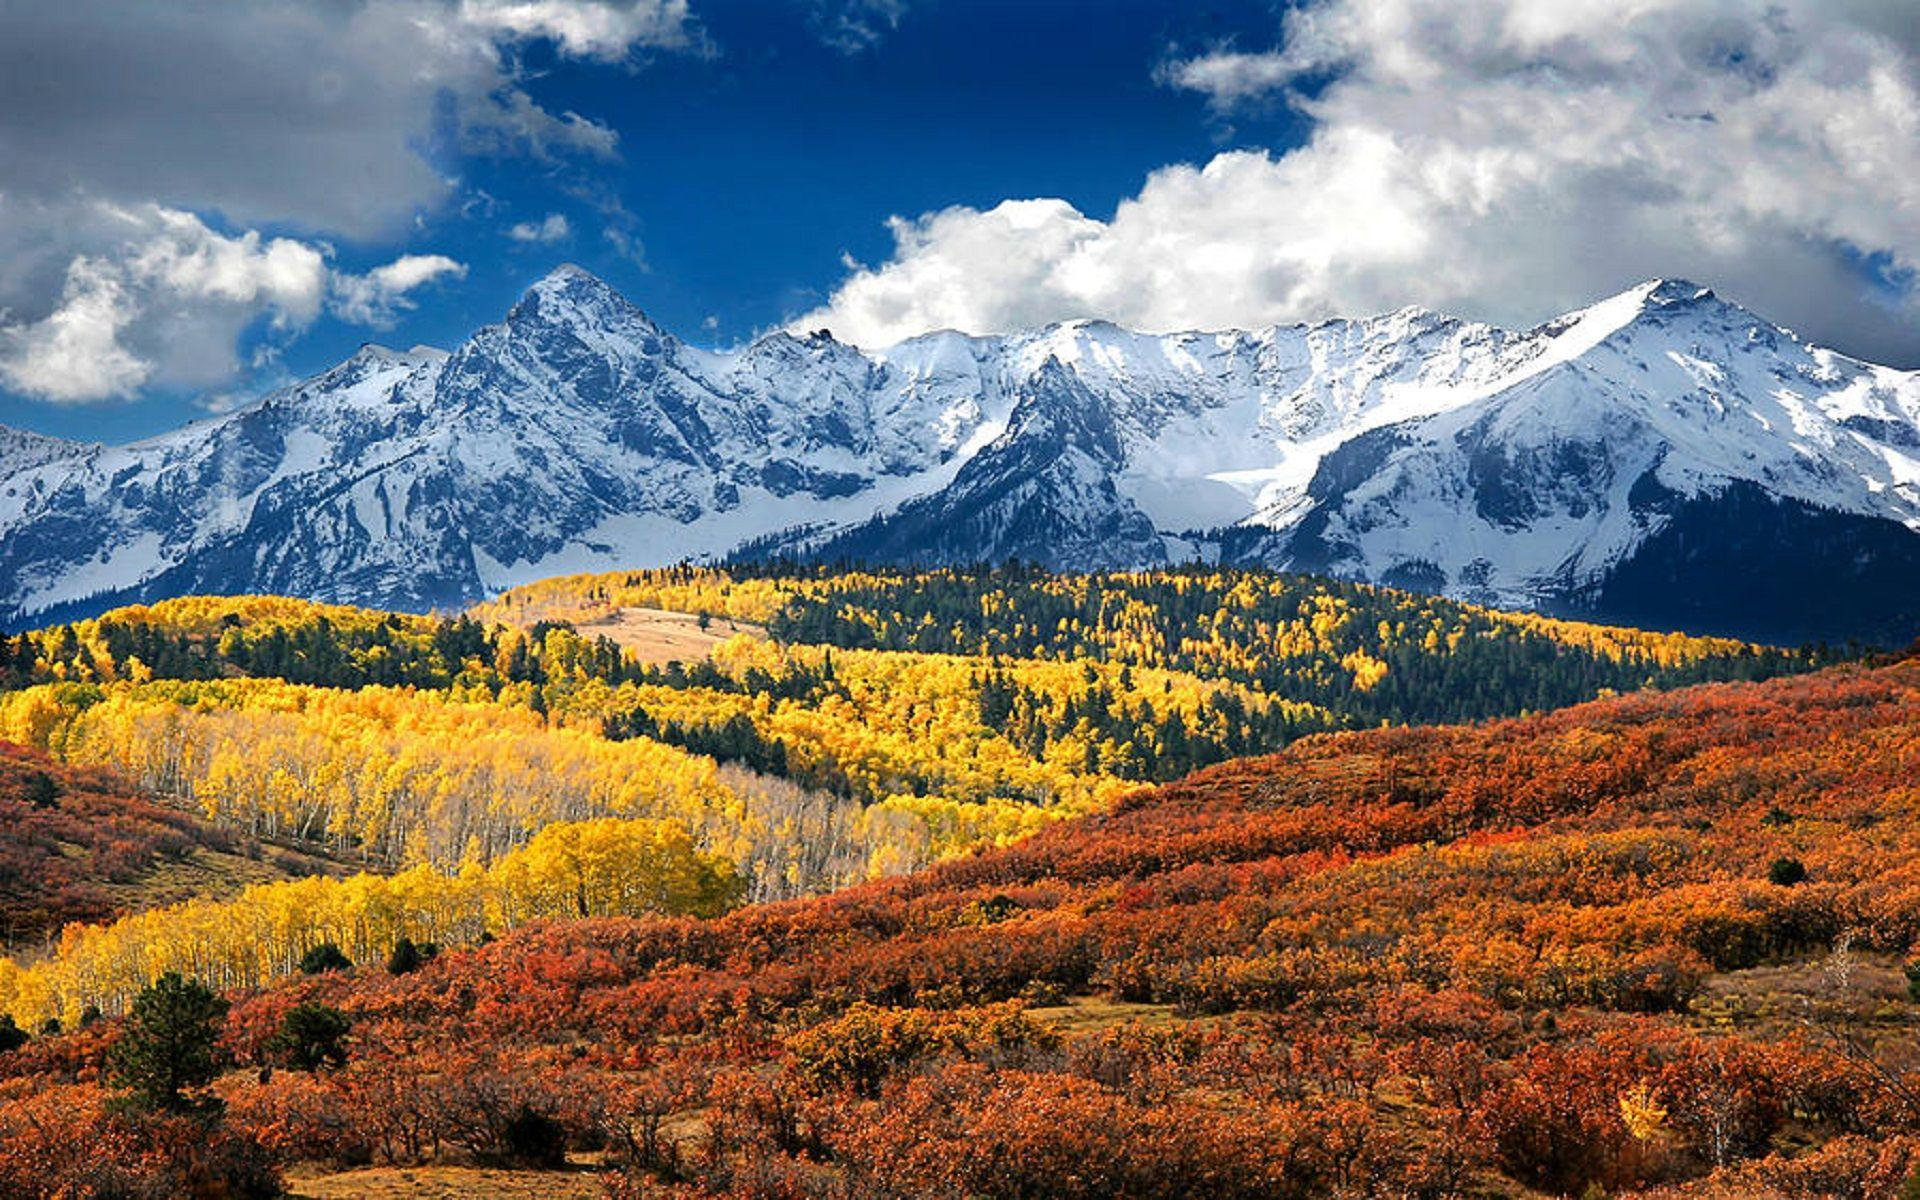 Colorado Image Download Free